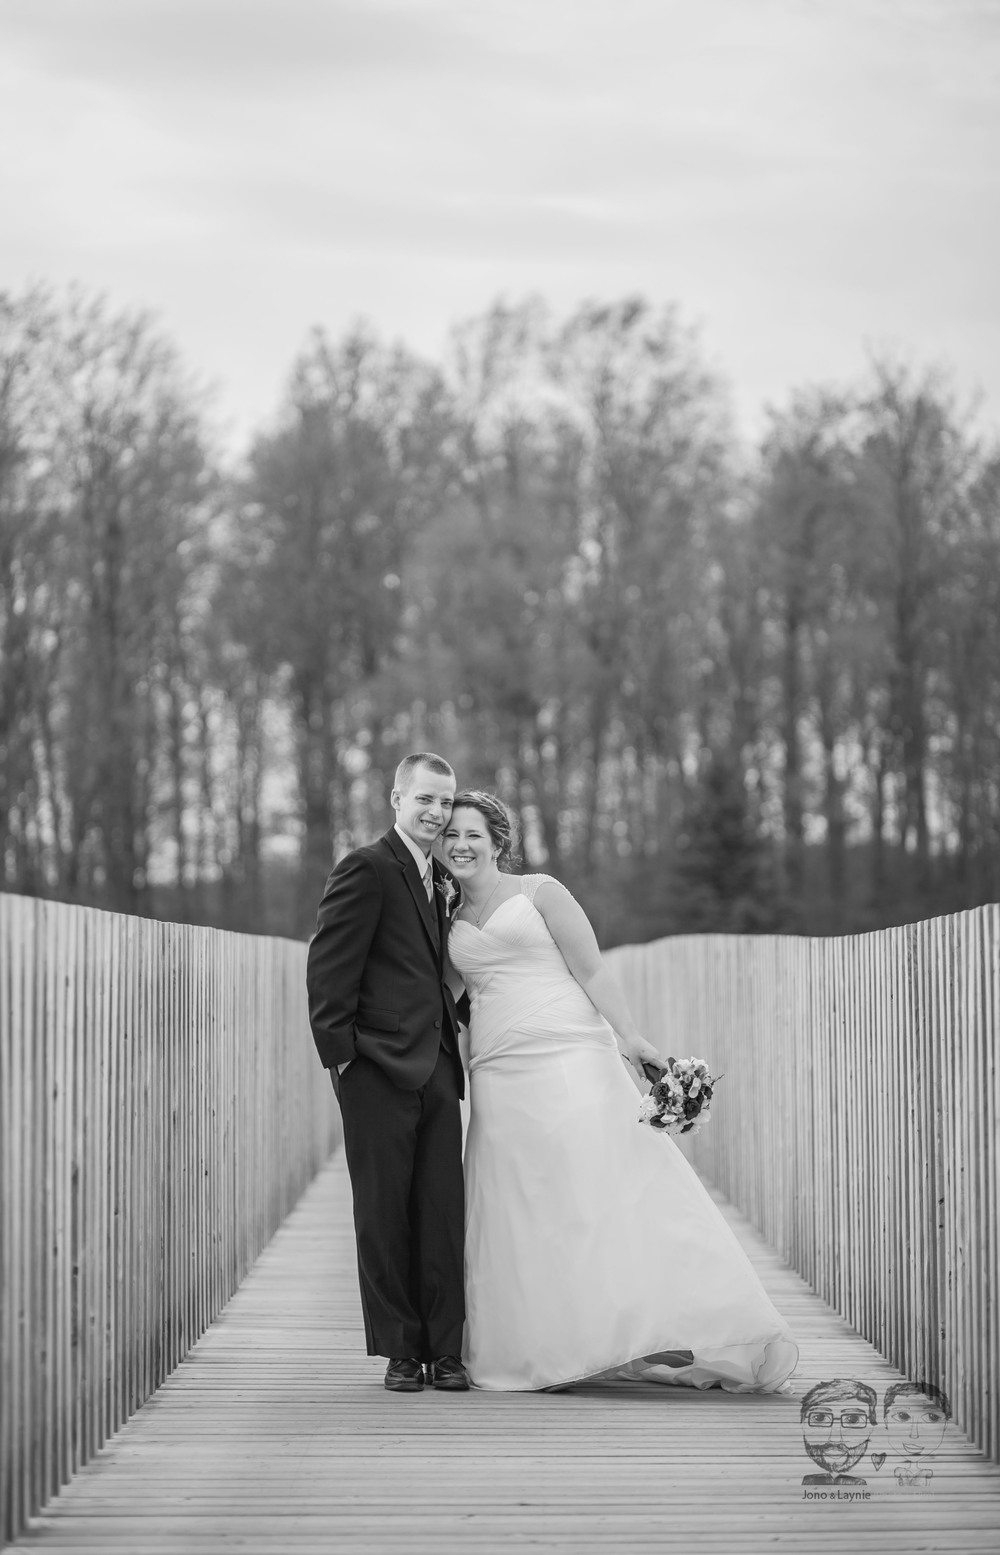 35Toronto Wedding Photographers and Videographers-Jono & Laynie Co.-Orangeville Wedding.jpg